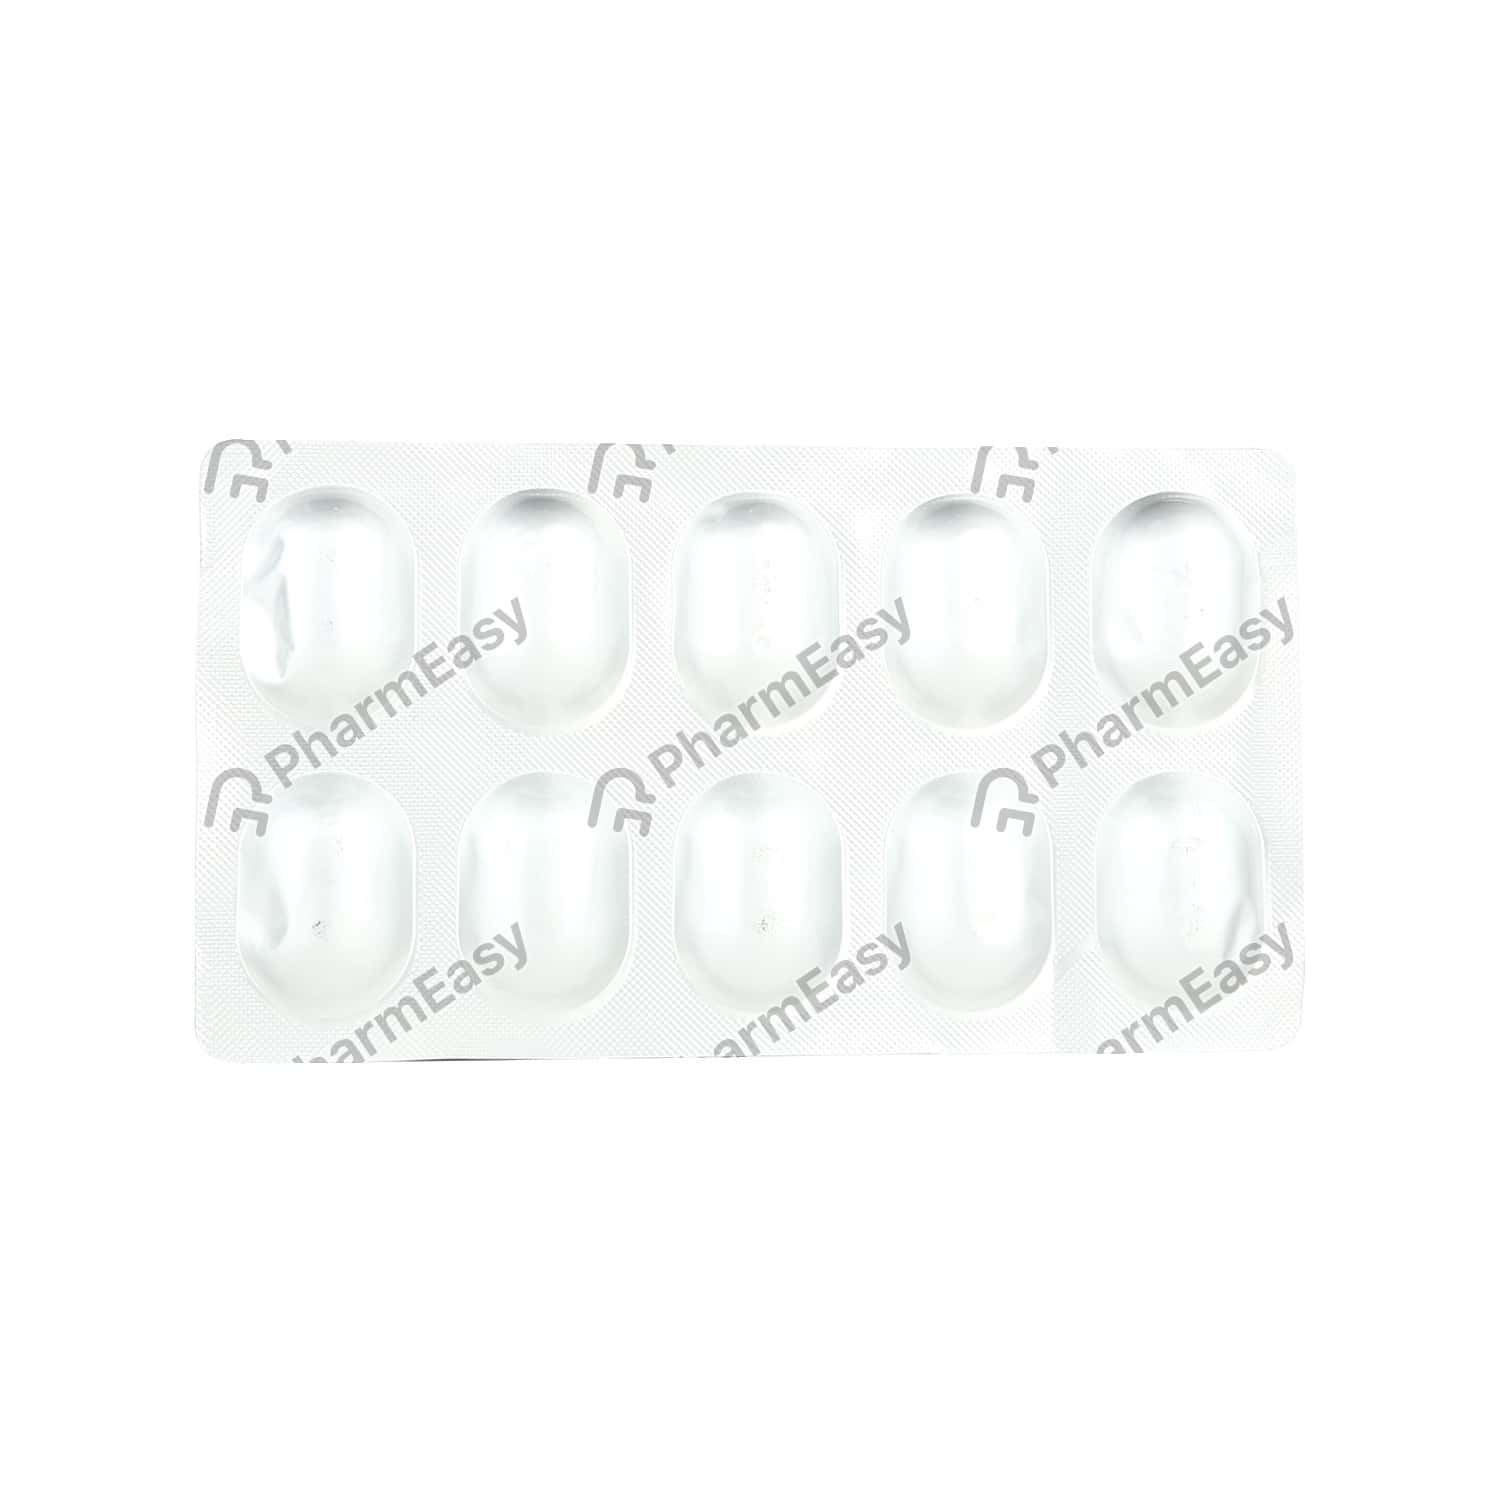 Tenzulix M 1000 Strip Of 10 Tablets